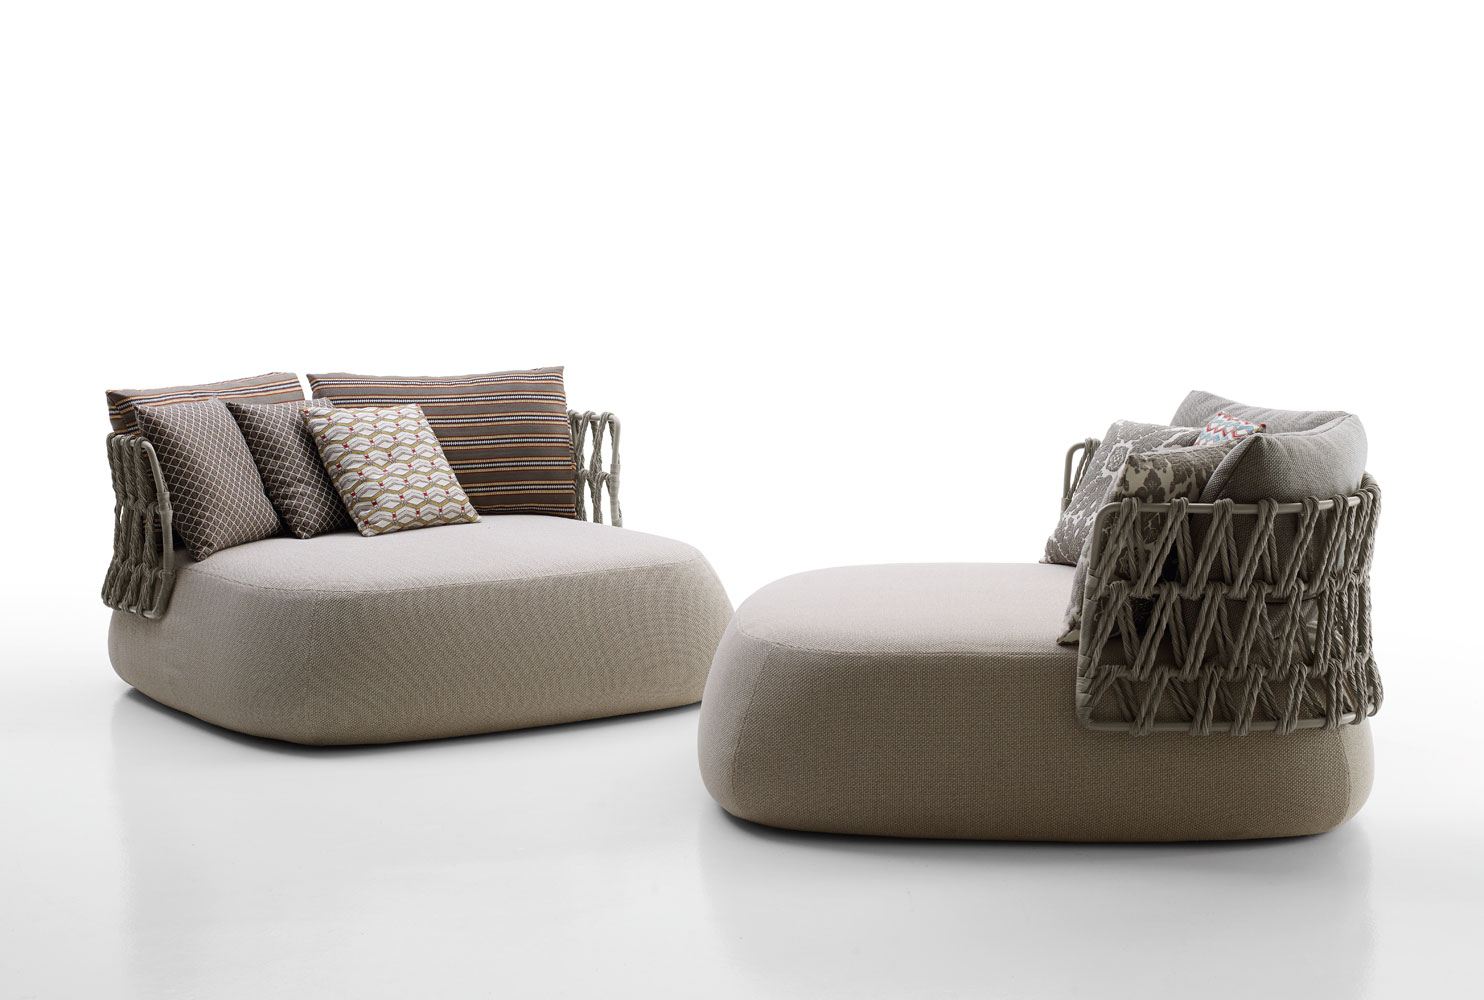 b b italia outdoor fat sofa buy from campbell watson uk. Black Bedroom Furniture Sets. Home Design Ideas